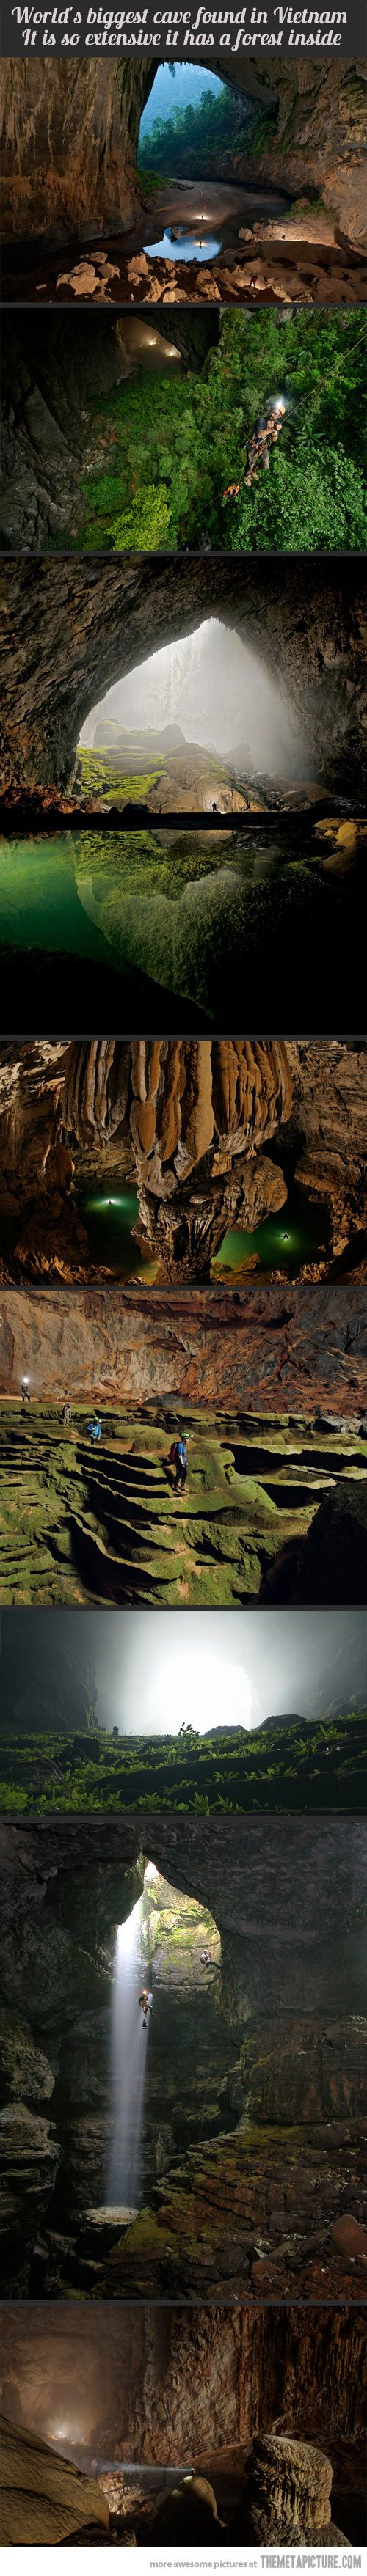 Largest cave in the world. This place looks amazing!